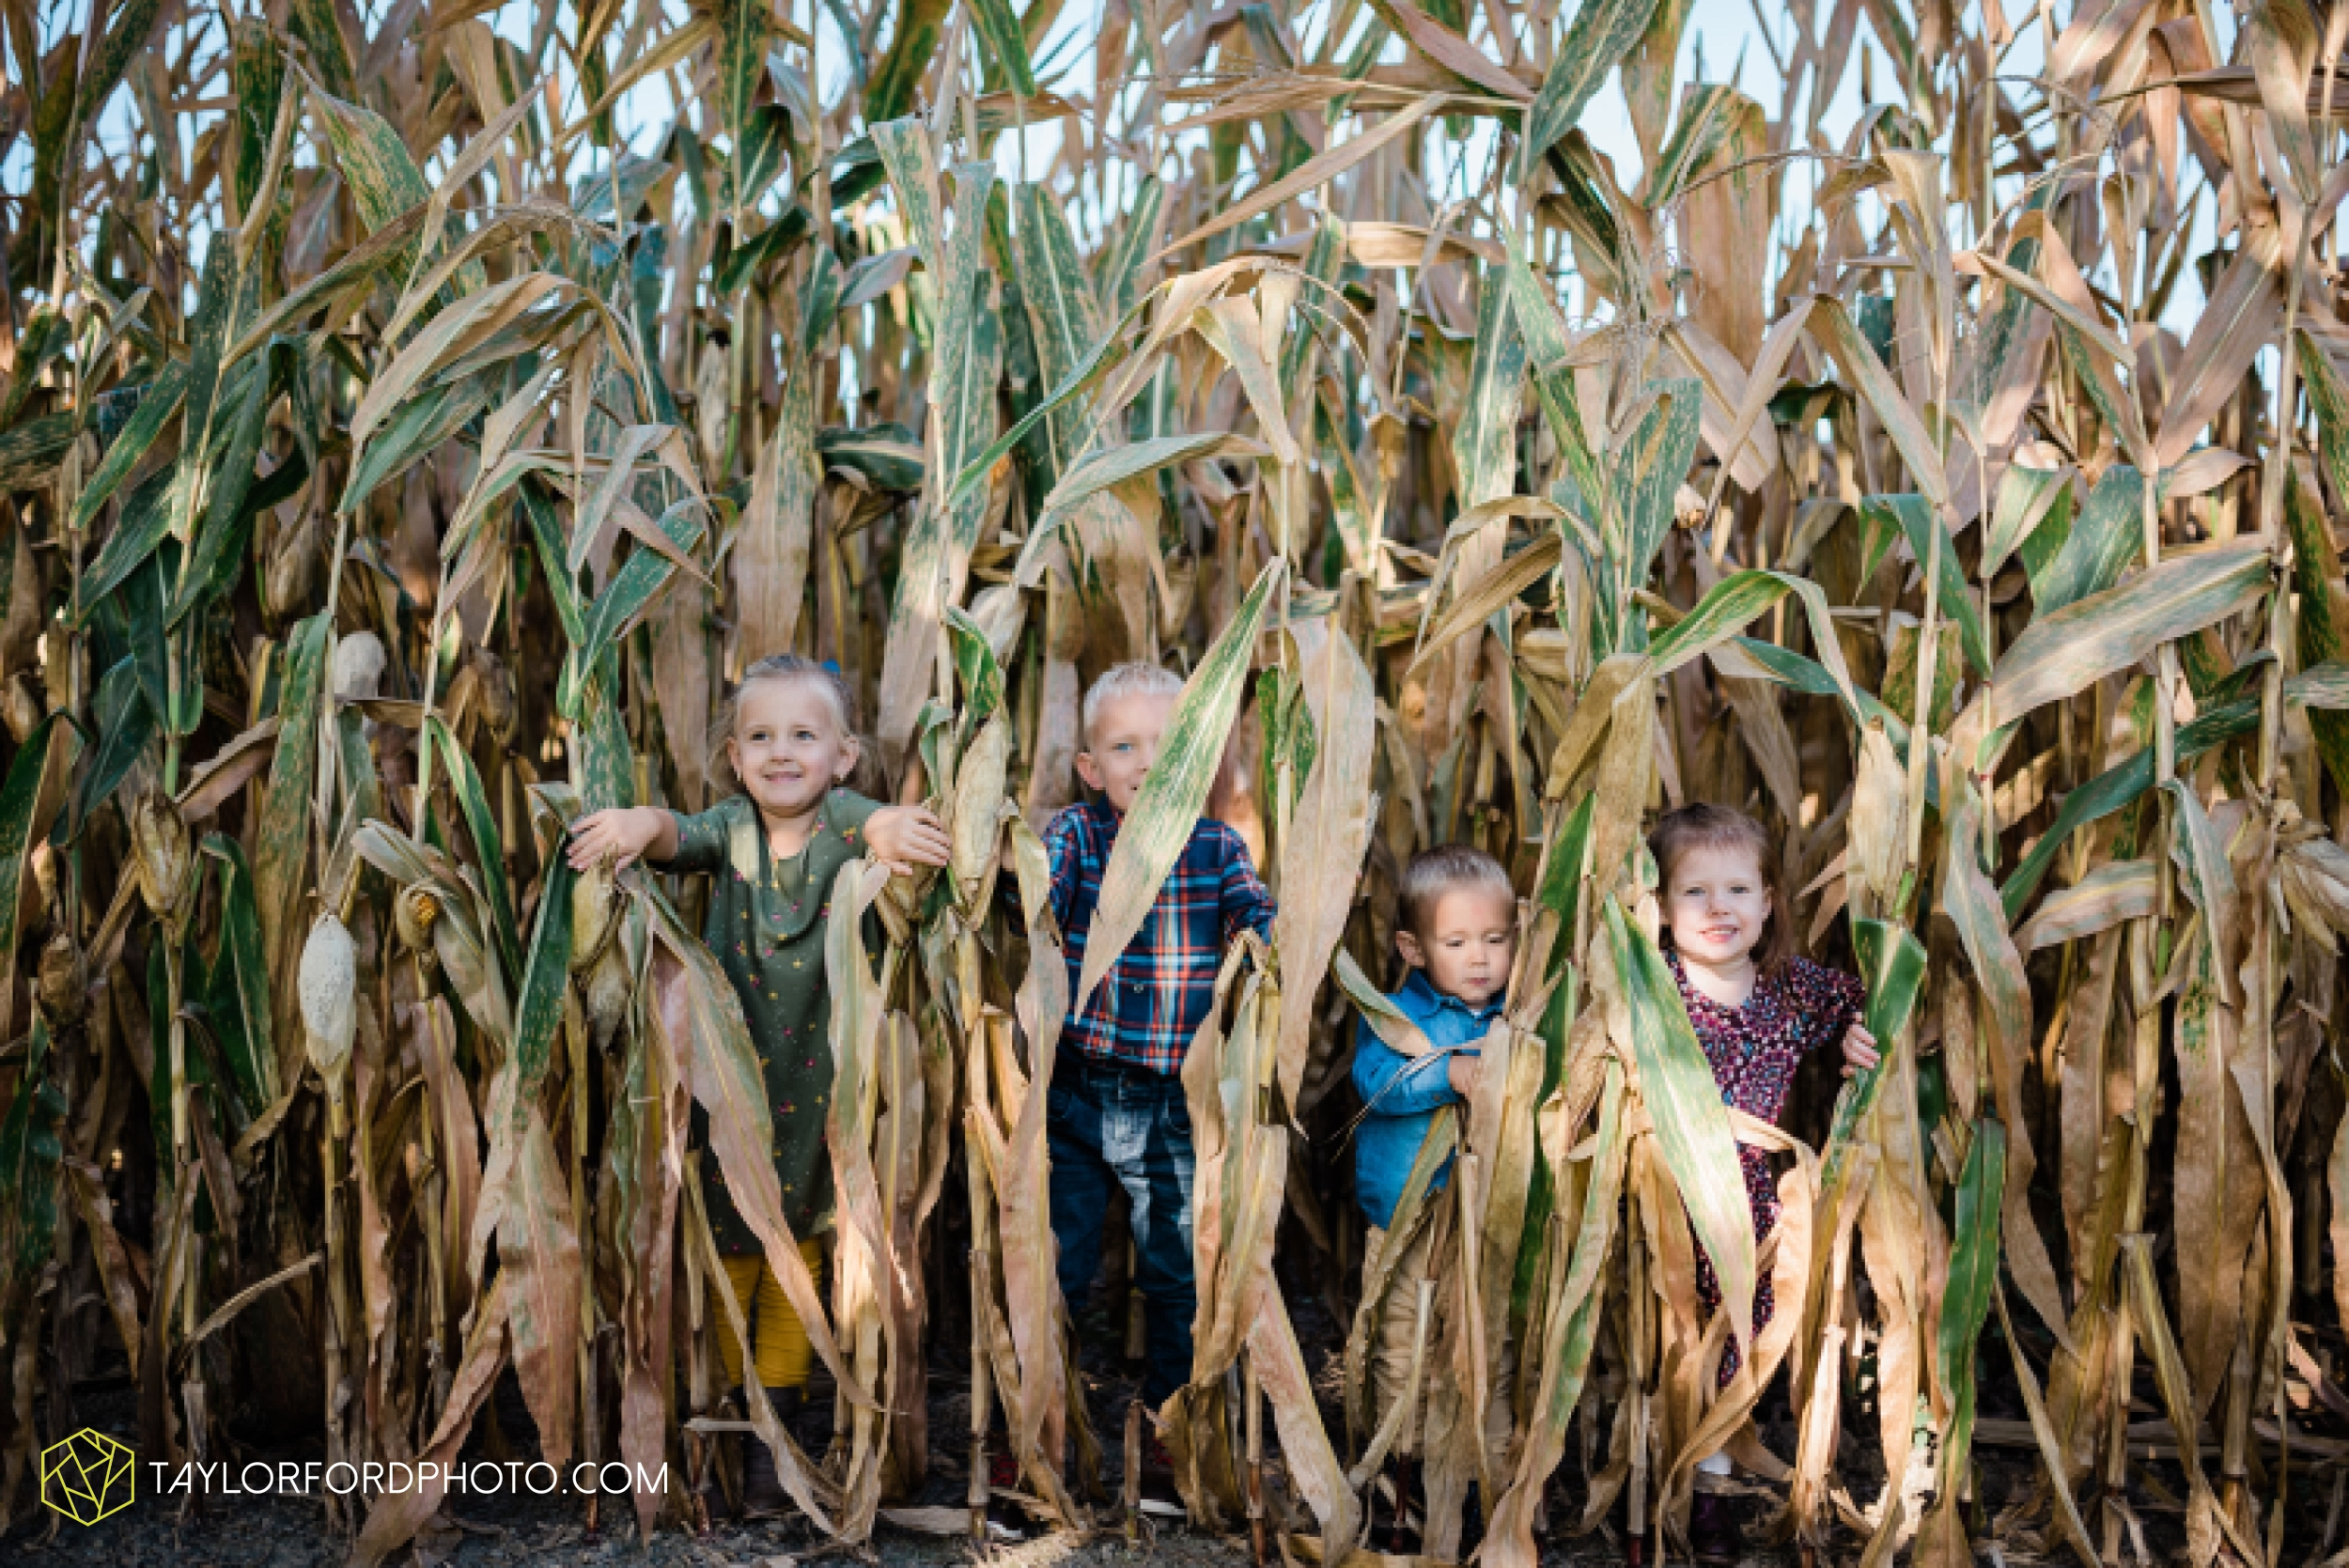 delphos-fort-jennings-ohio-at-home-lifestyle-farm-extended-family-photographer-taylor-ford-photography_0722.jpg